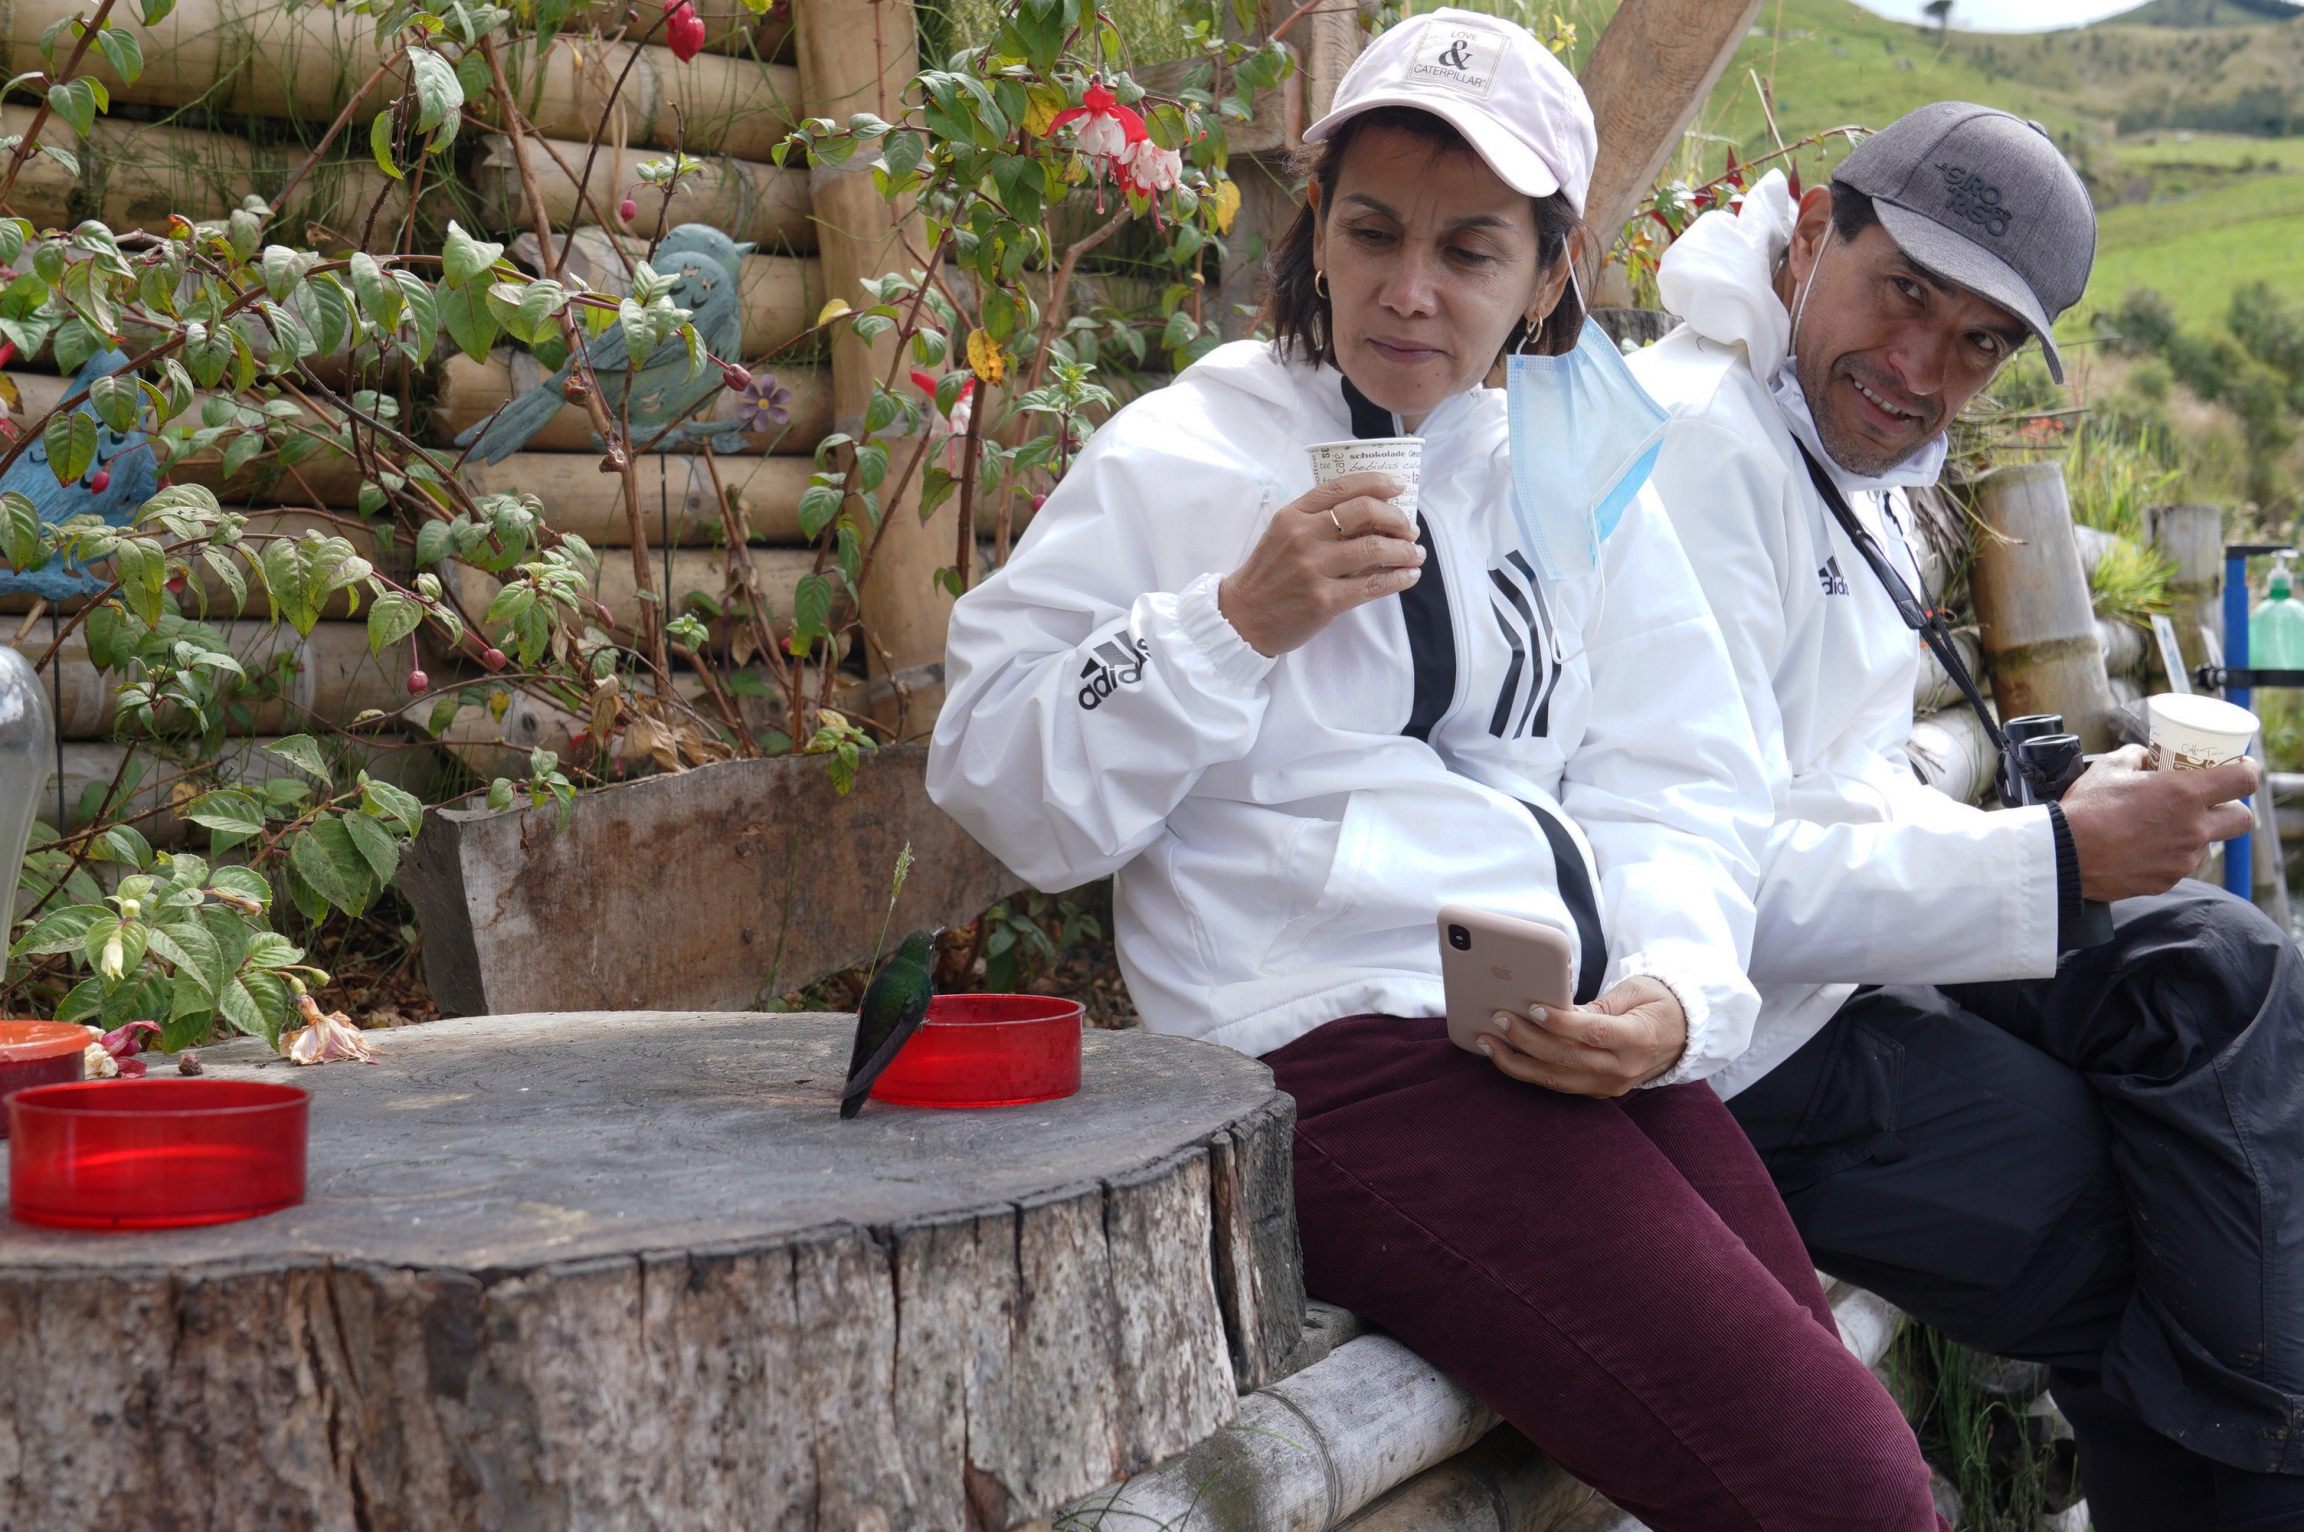 A tourist from Medellin Colombia gets up close with a hummingbird at Hacienda El Bosque.